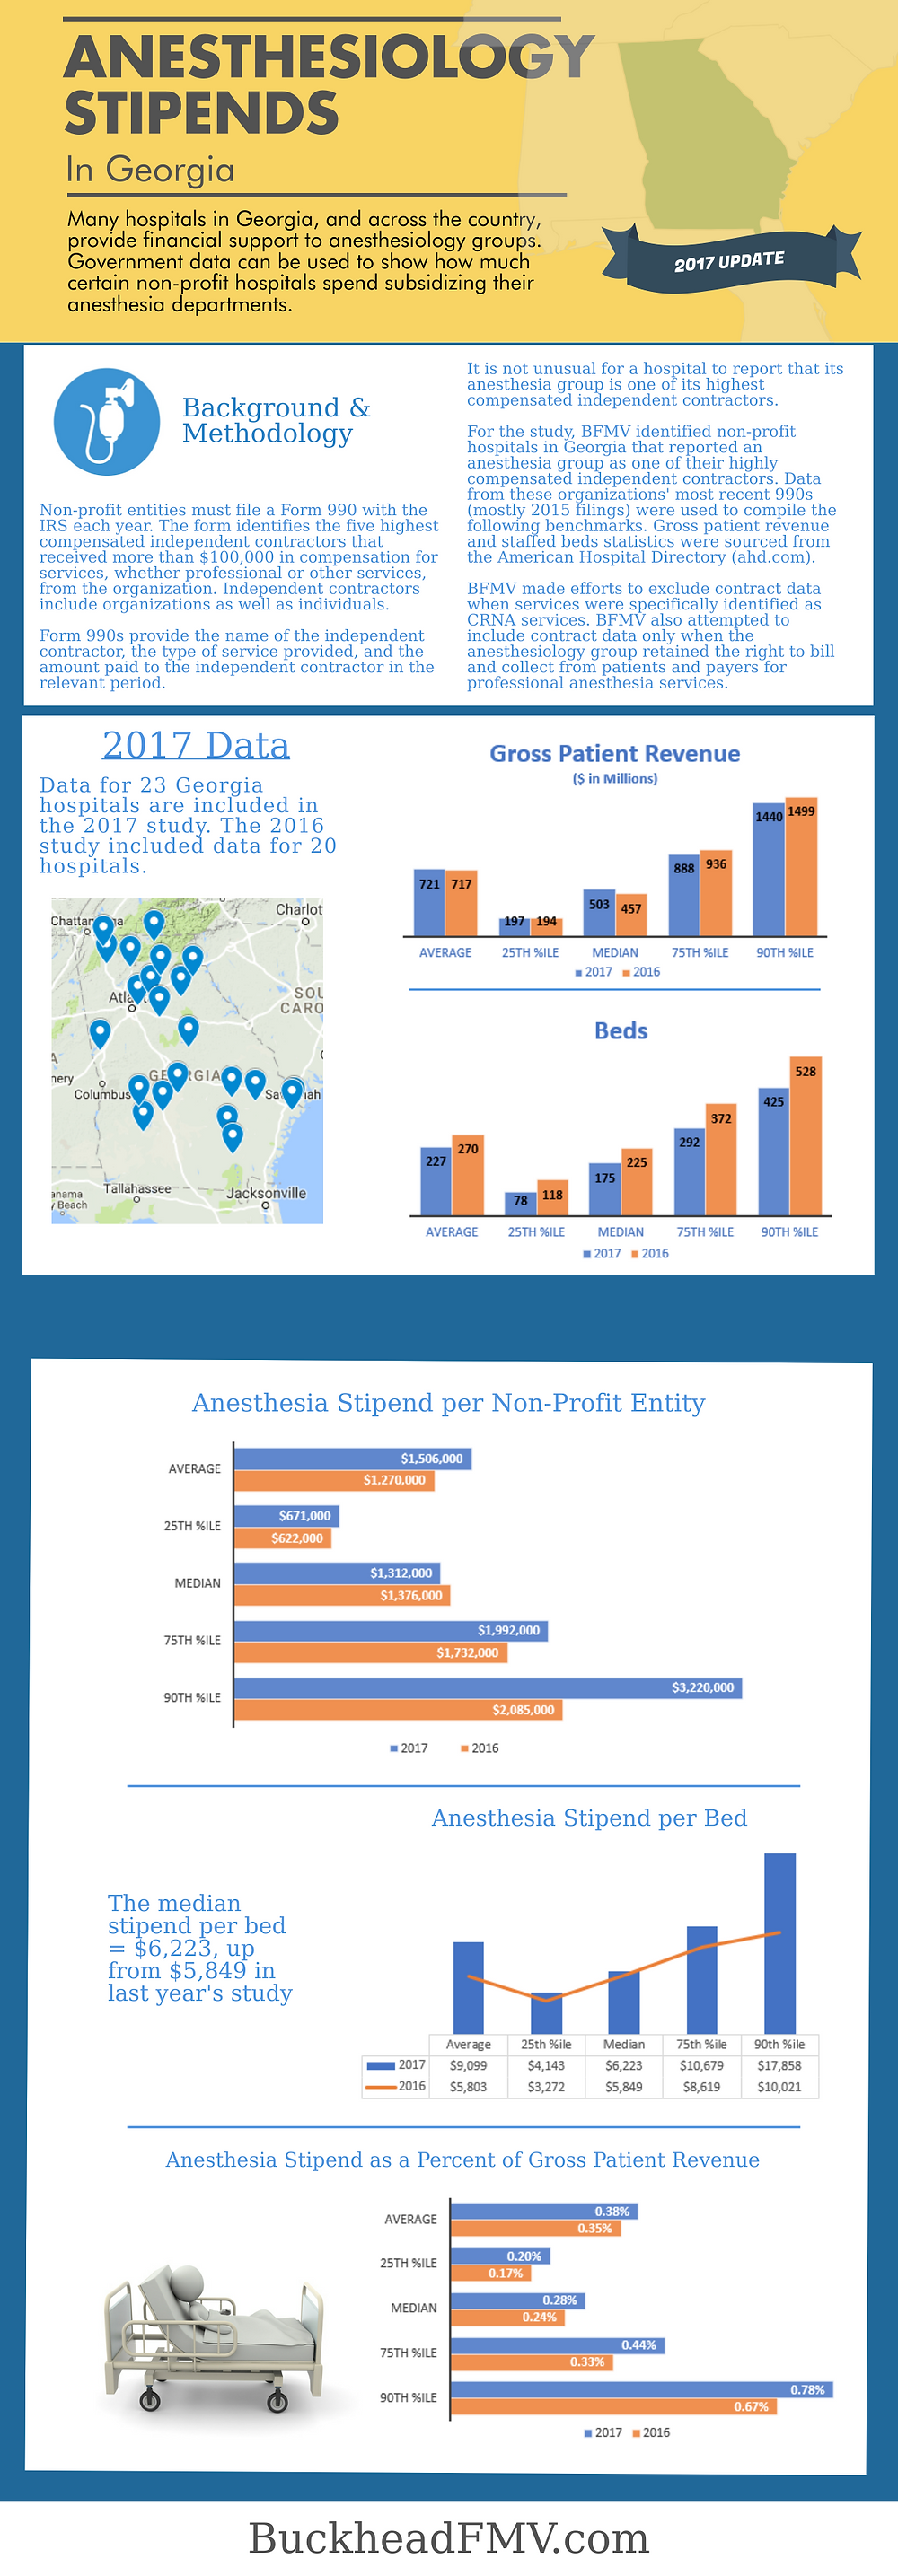 Anesthesiology Stipends in Georiga